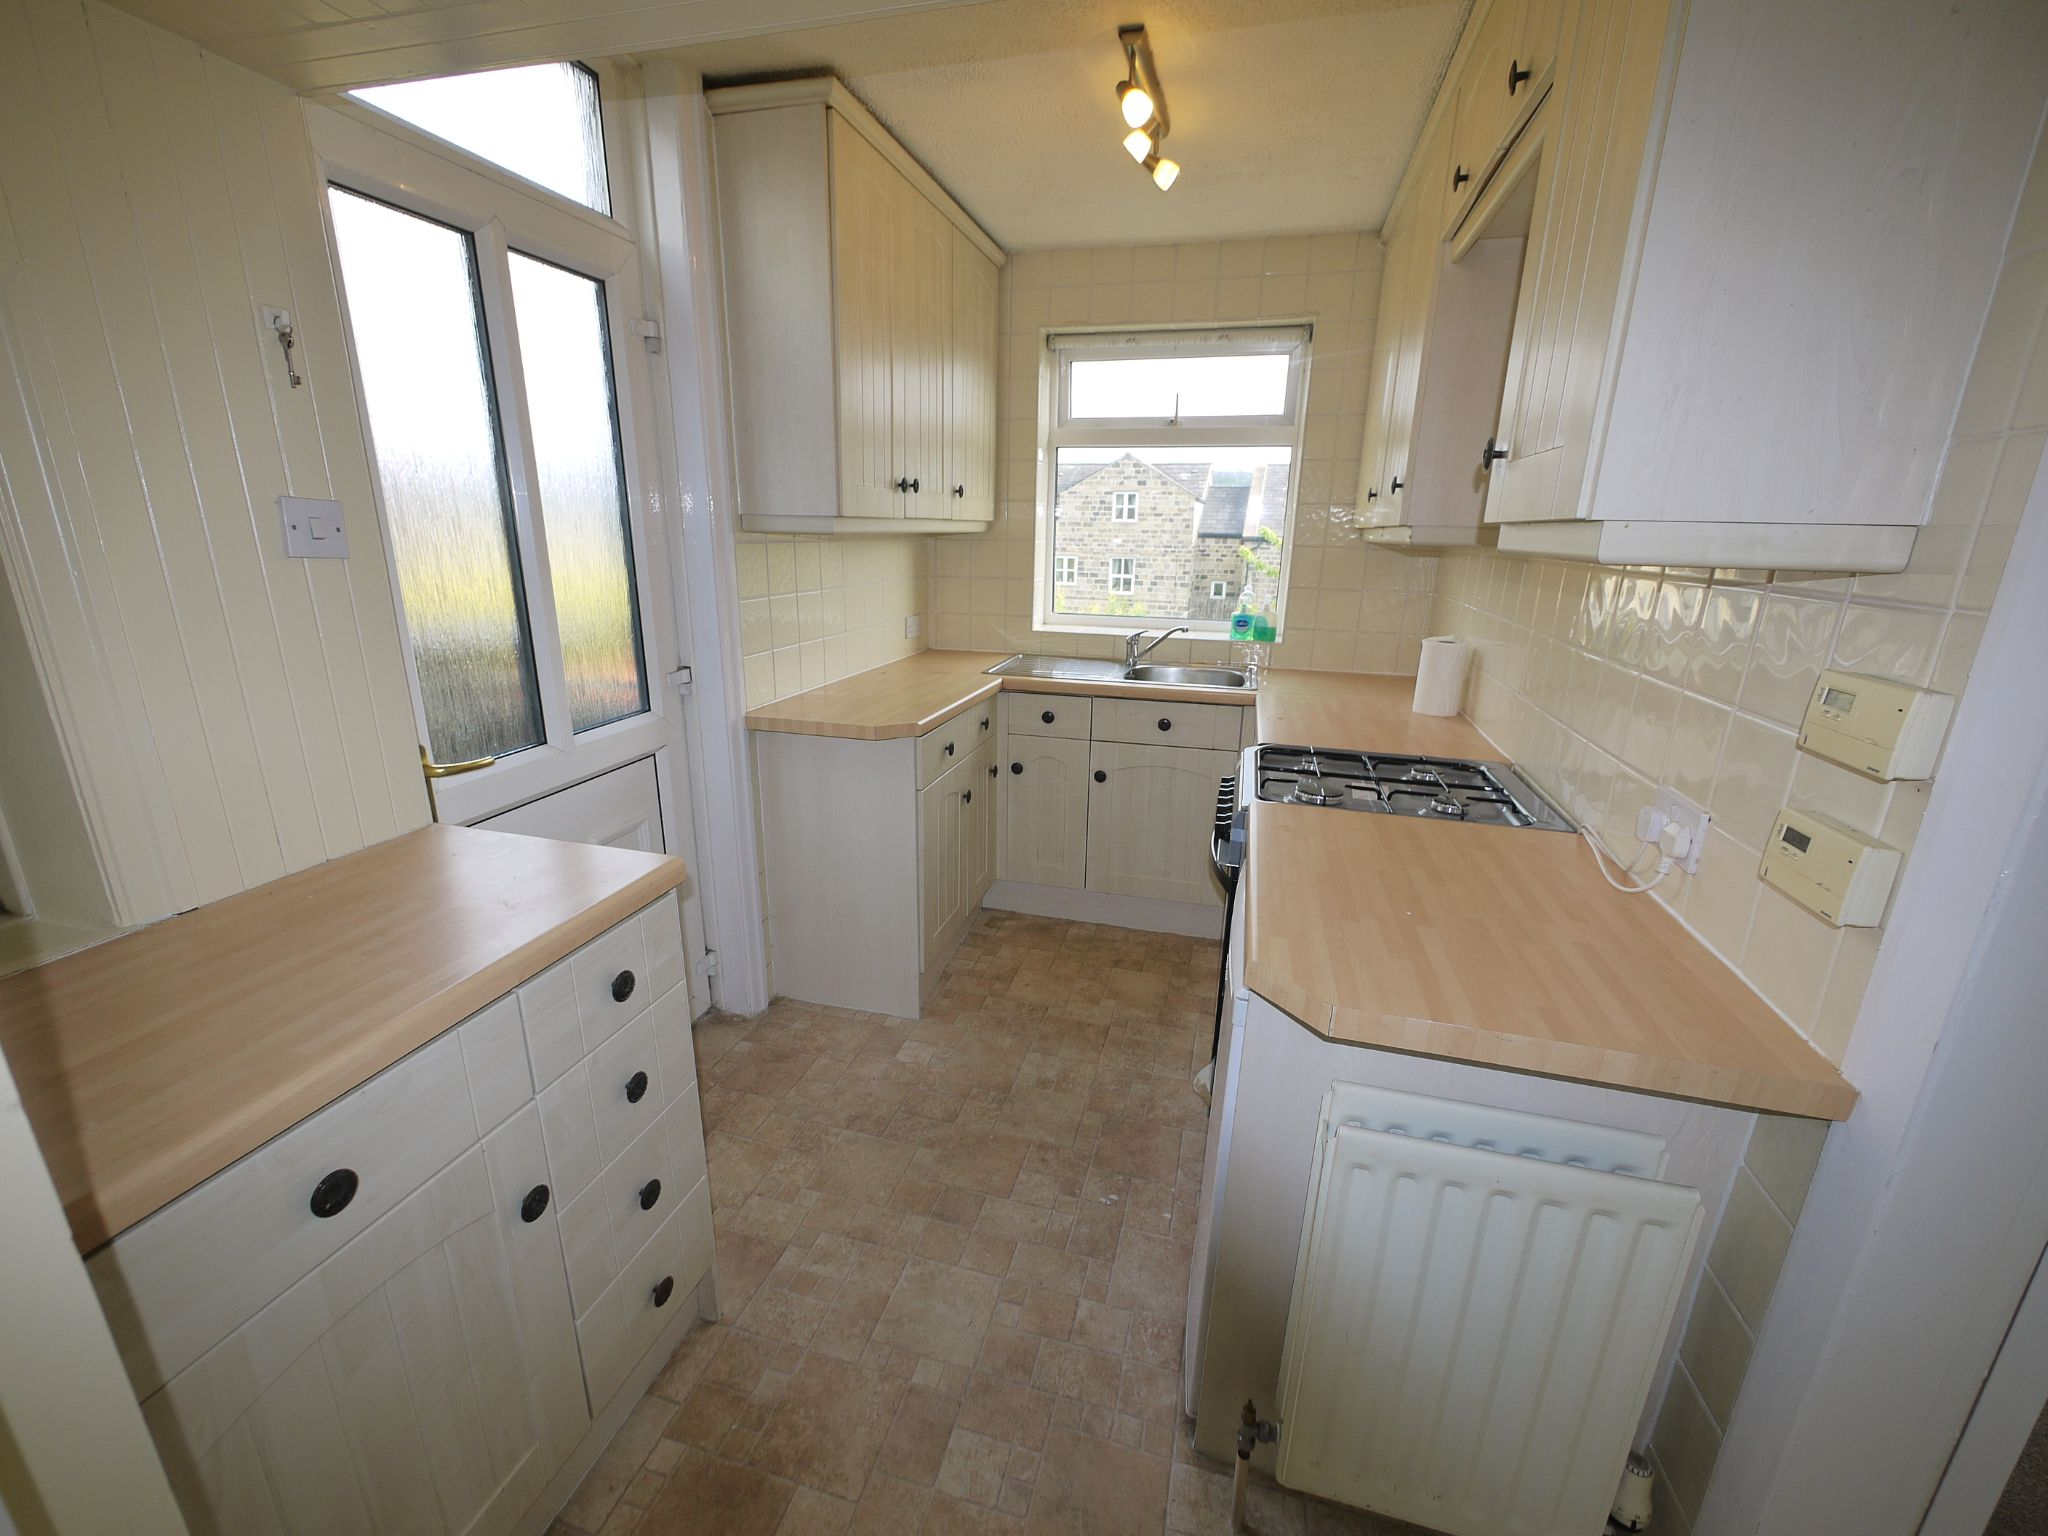 3 bedroom semi-detached house To Let in Riddlesden - Kitchen.